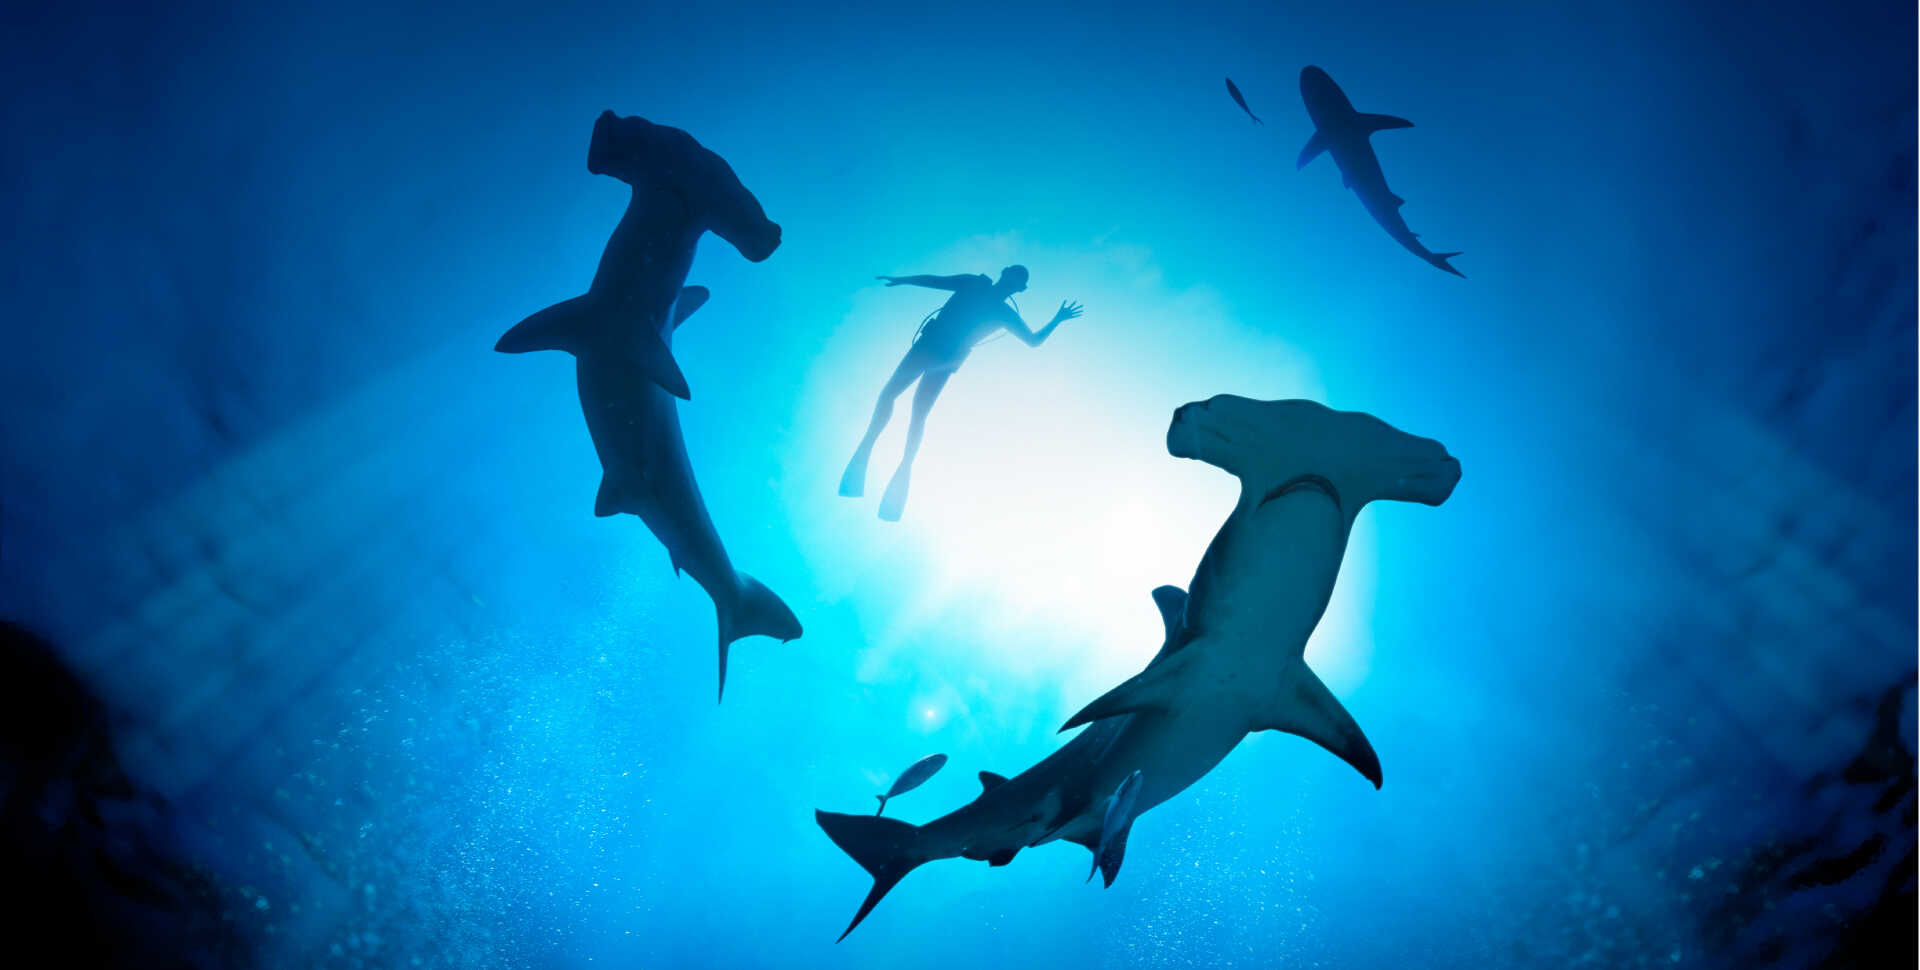 Underwater view from below of hammerhead sharks and a human swimmer